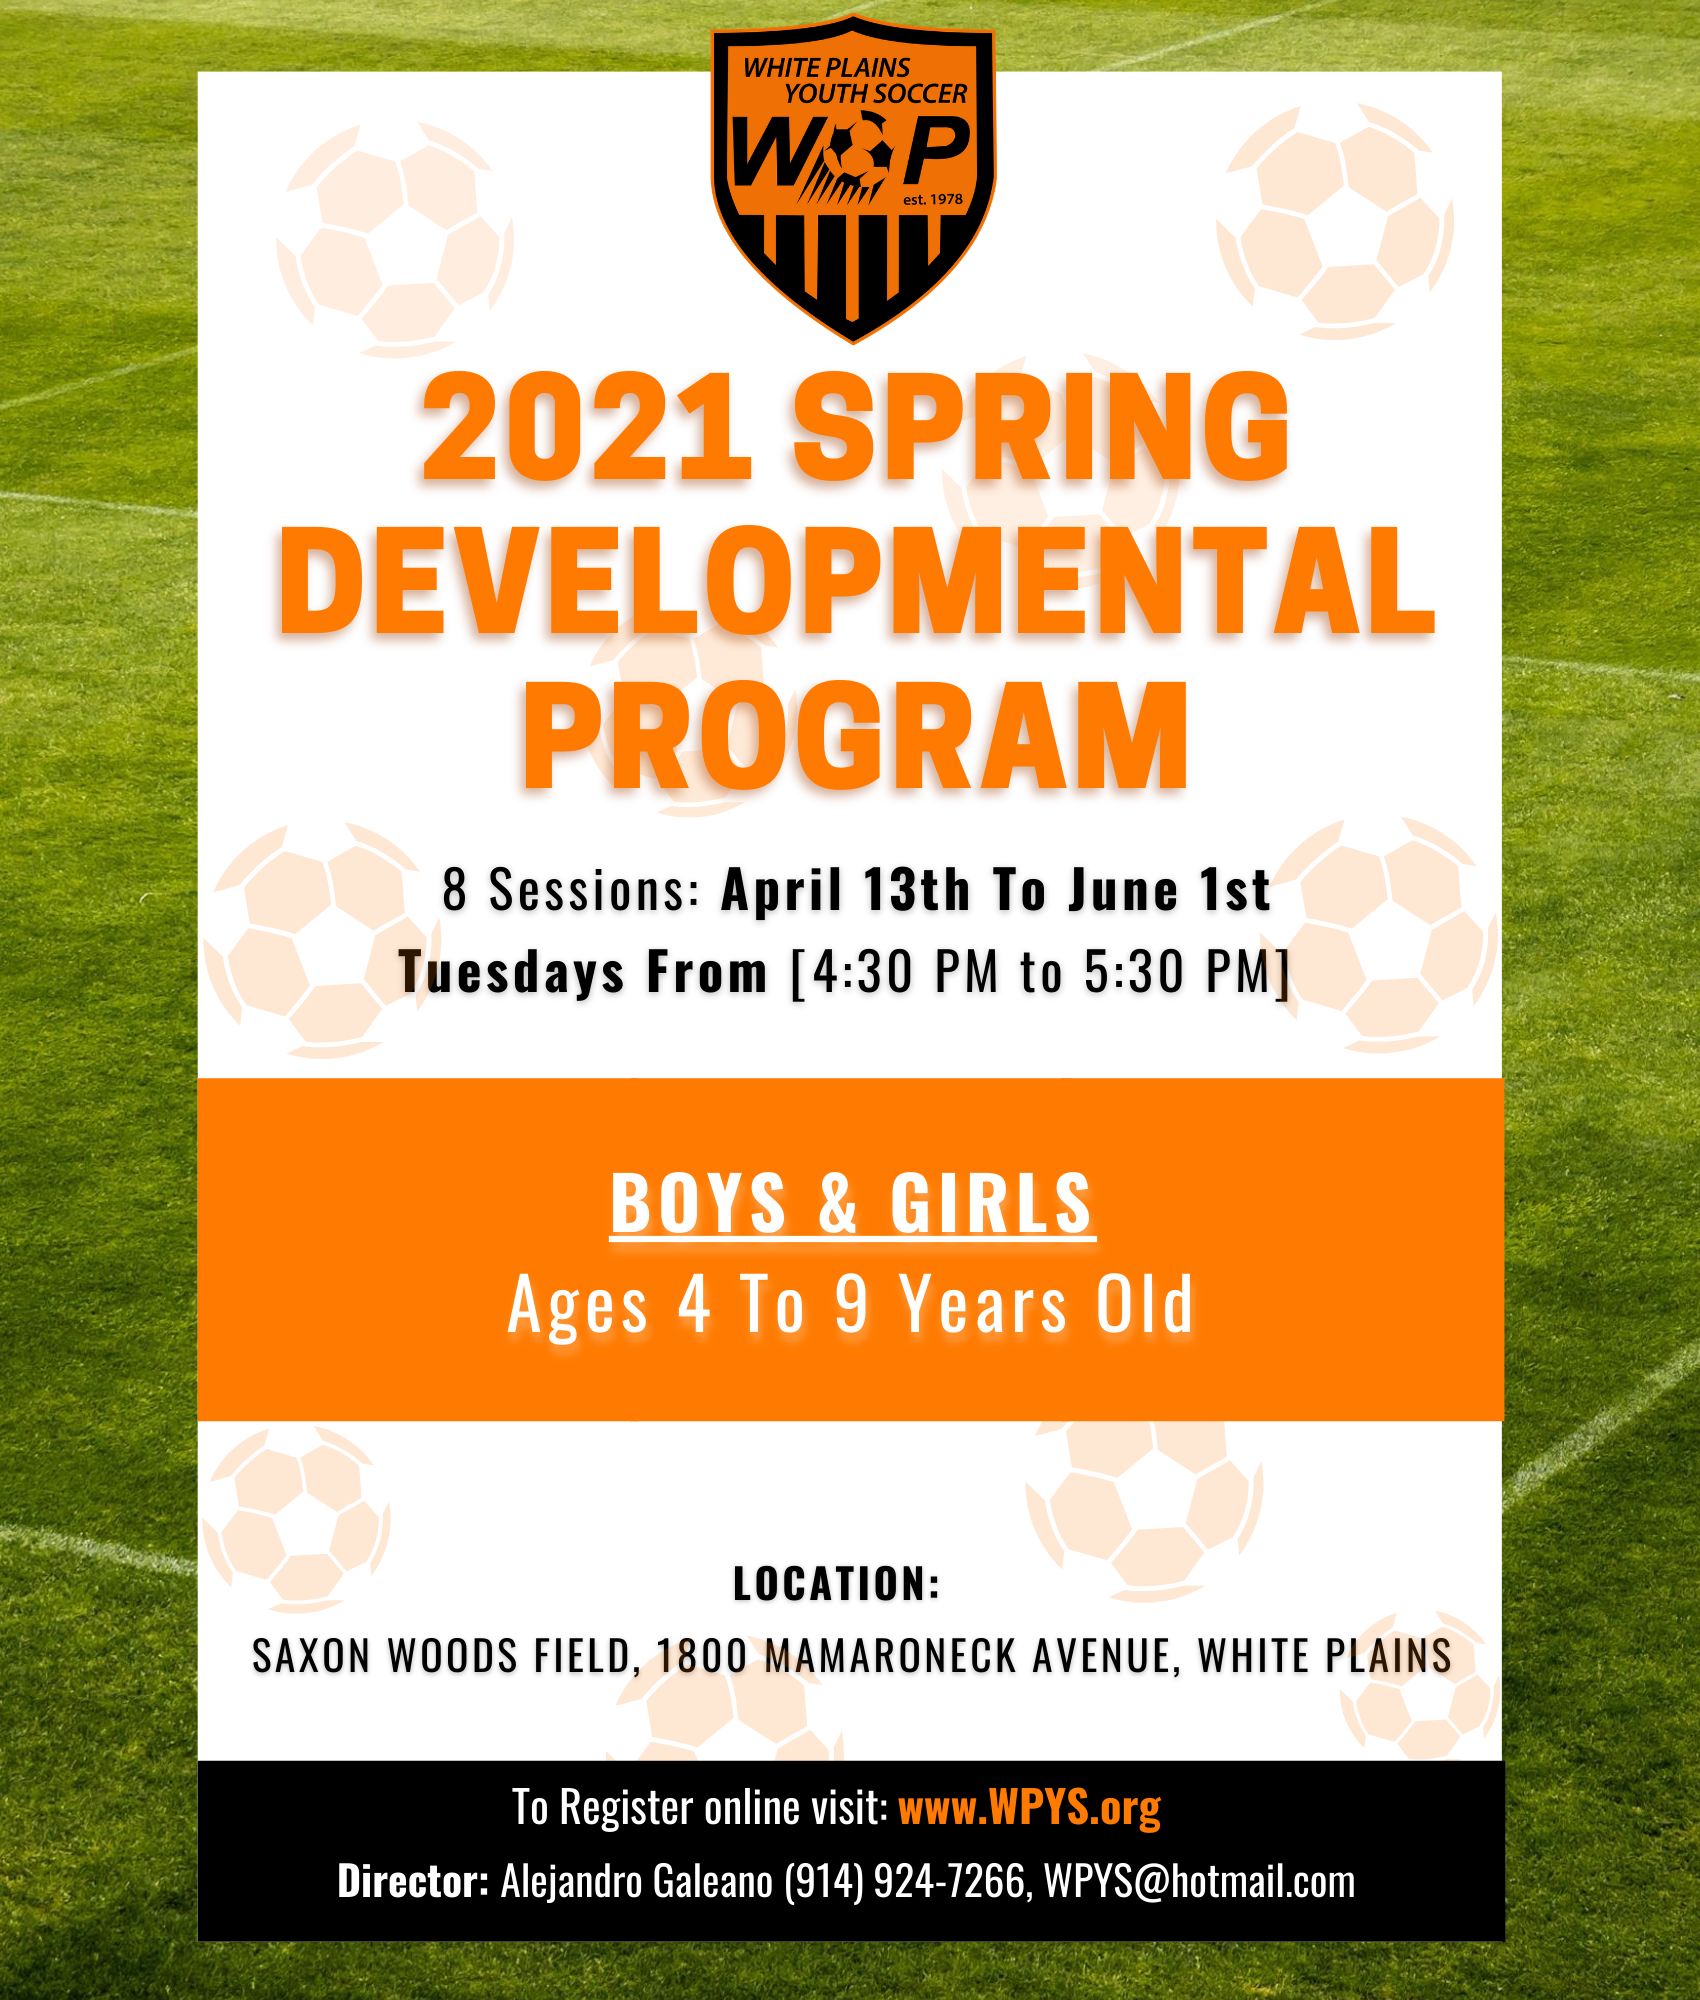 Spring 2021 Developmental Program